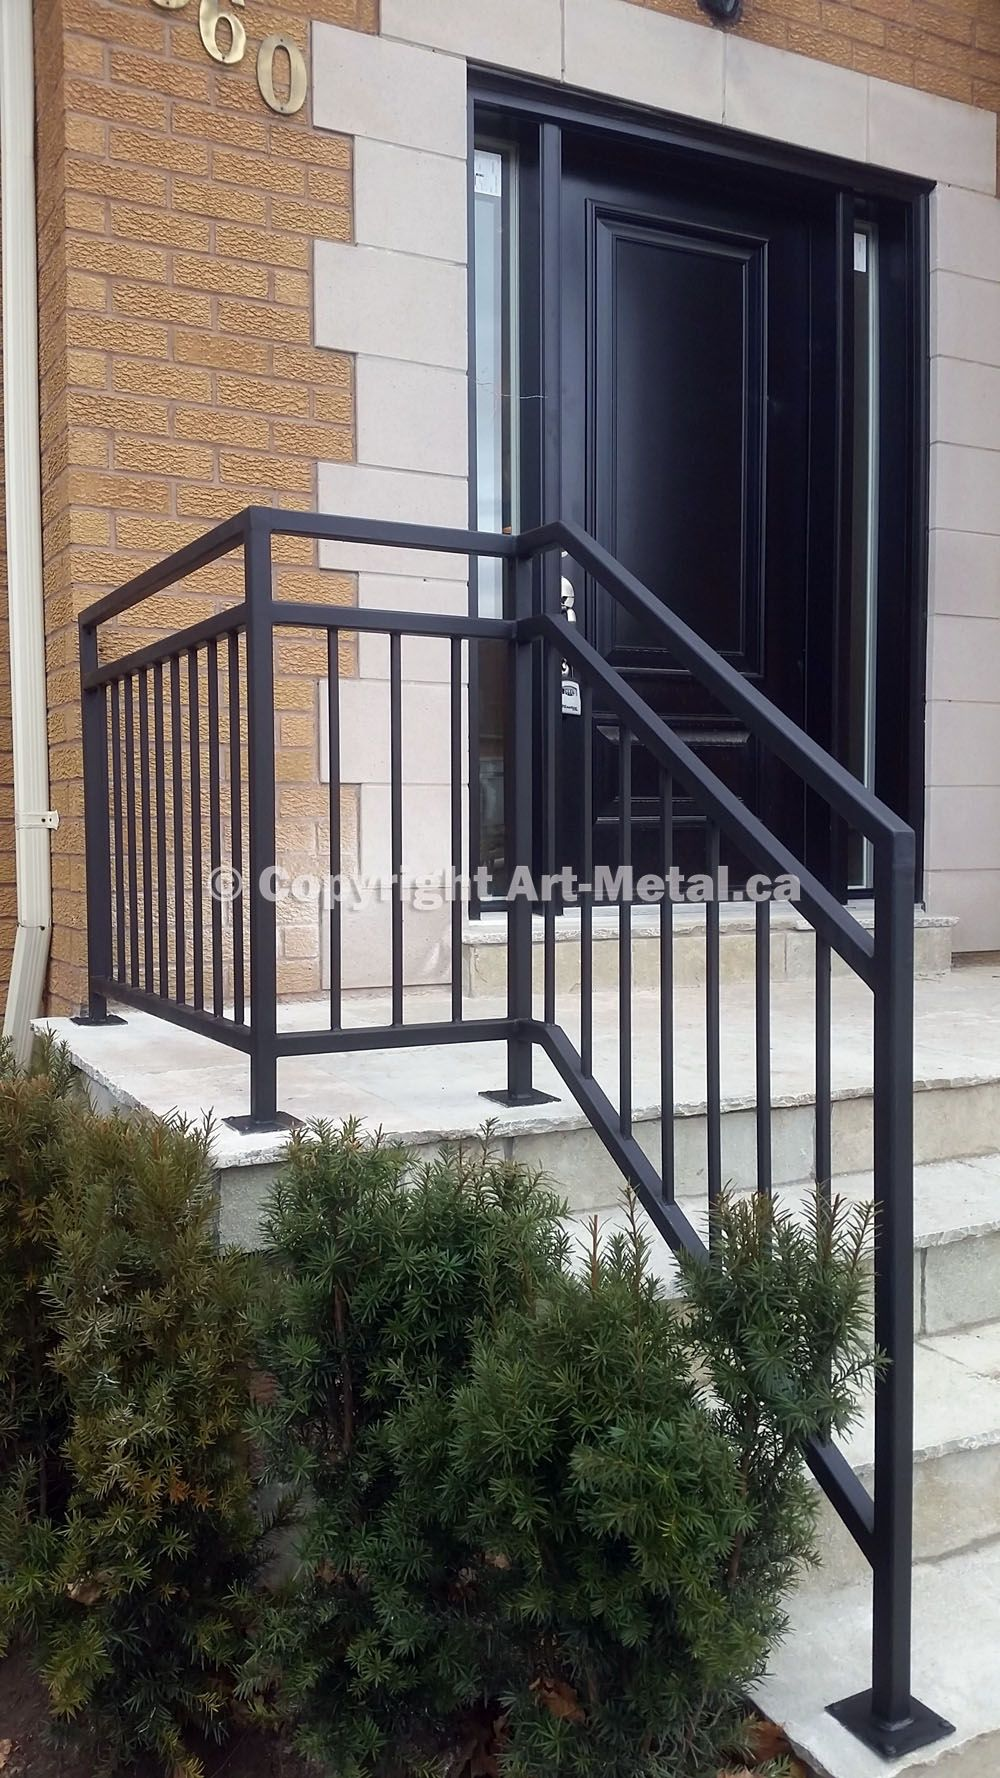 Railings Handrails For Stairs